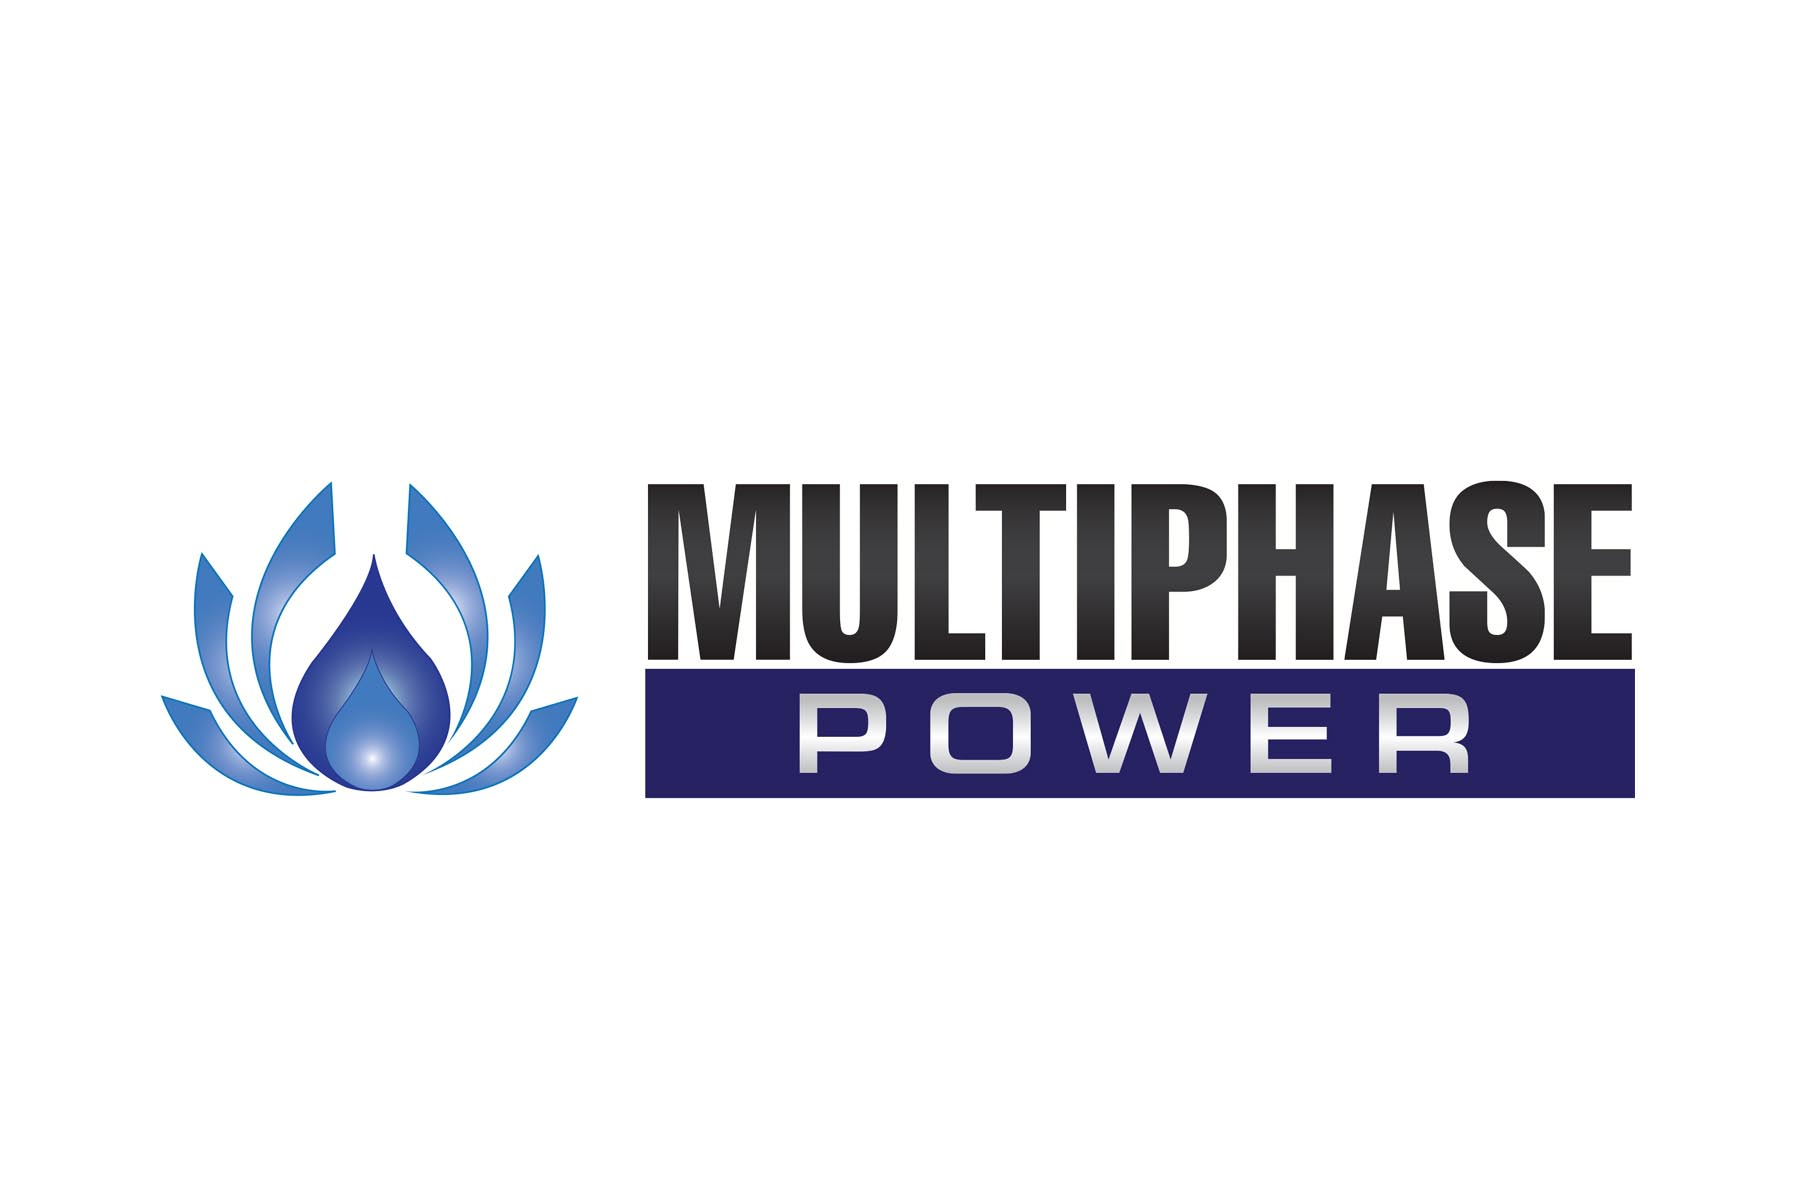 Multiphase Power